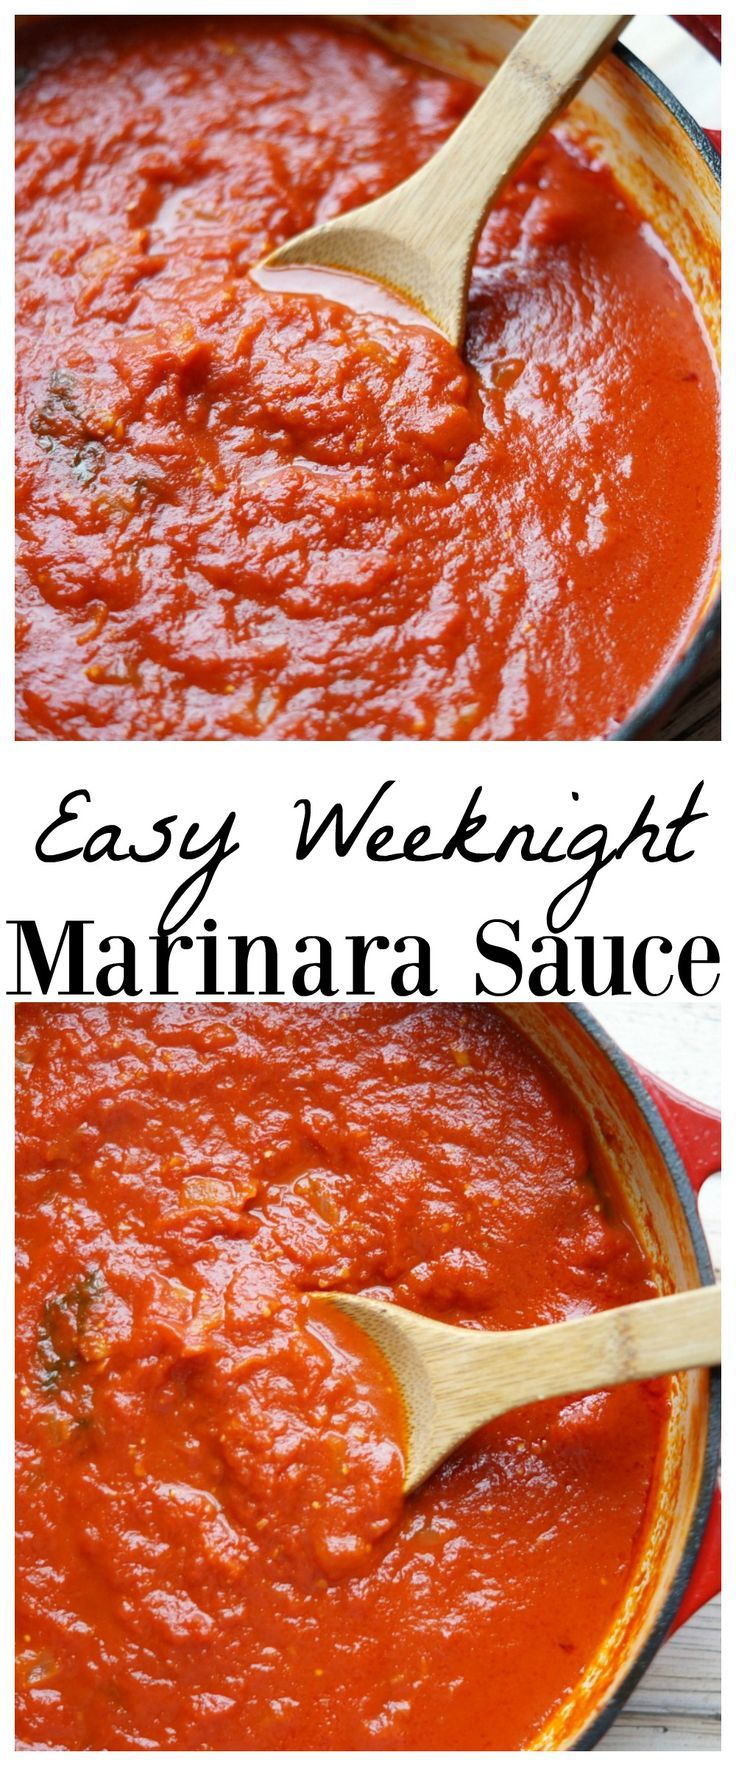 Easy Marinara Sauce to make every mom's life simpler during the work week!